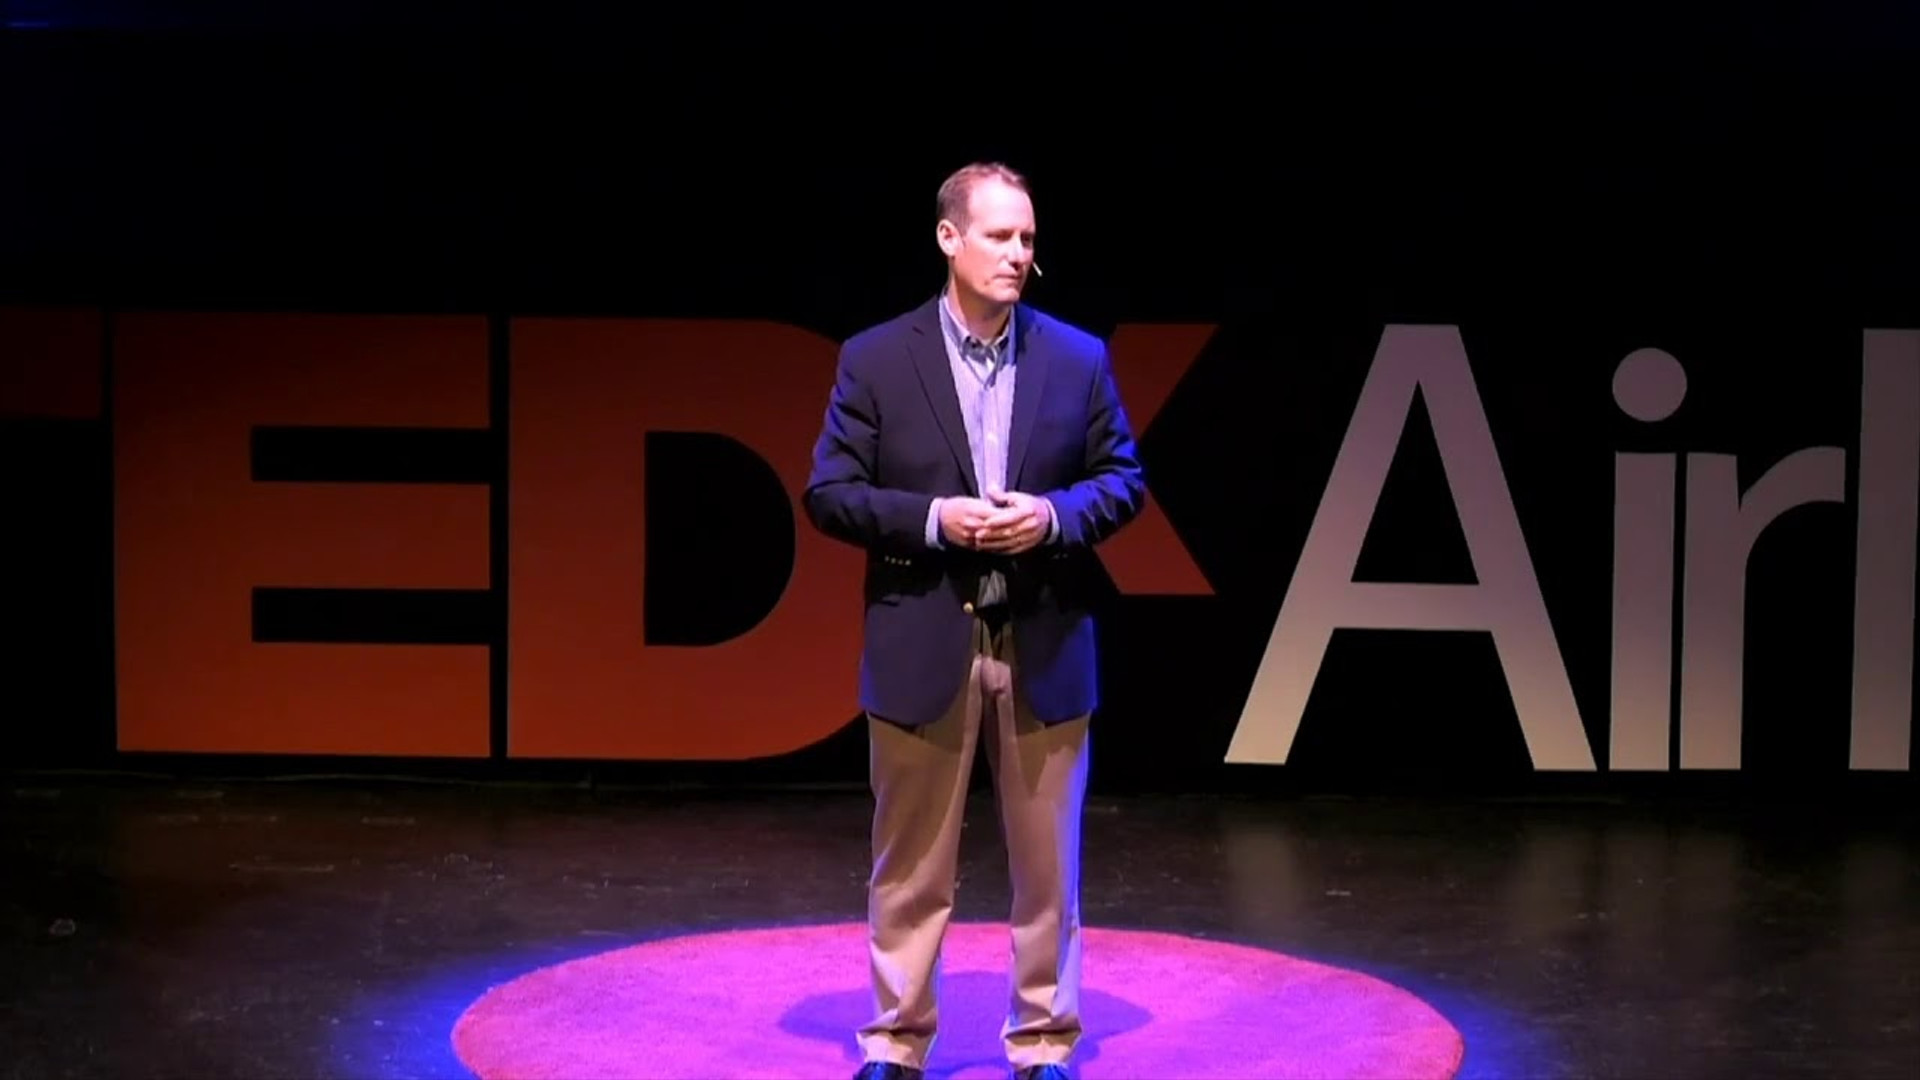 Ben David at TedxAirlie - March 29, 2019